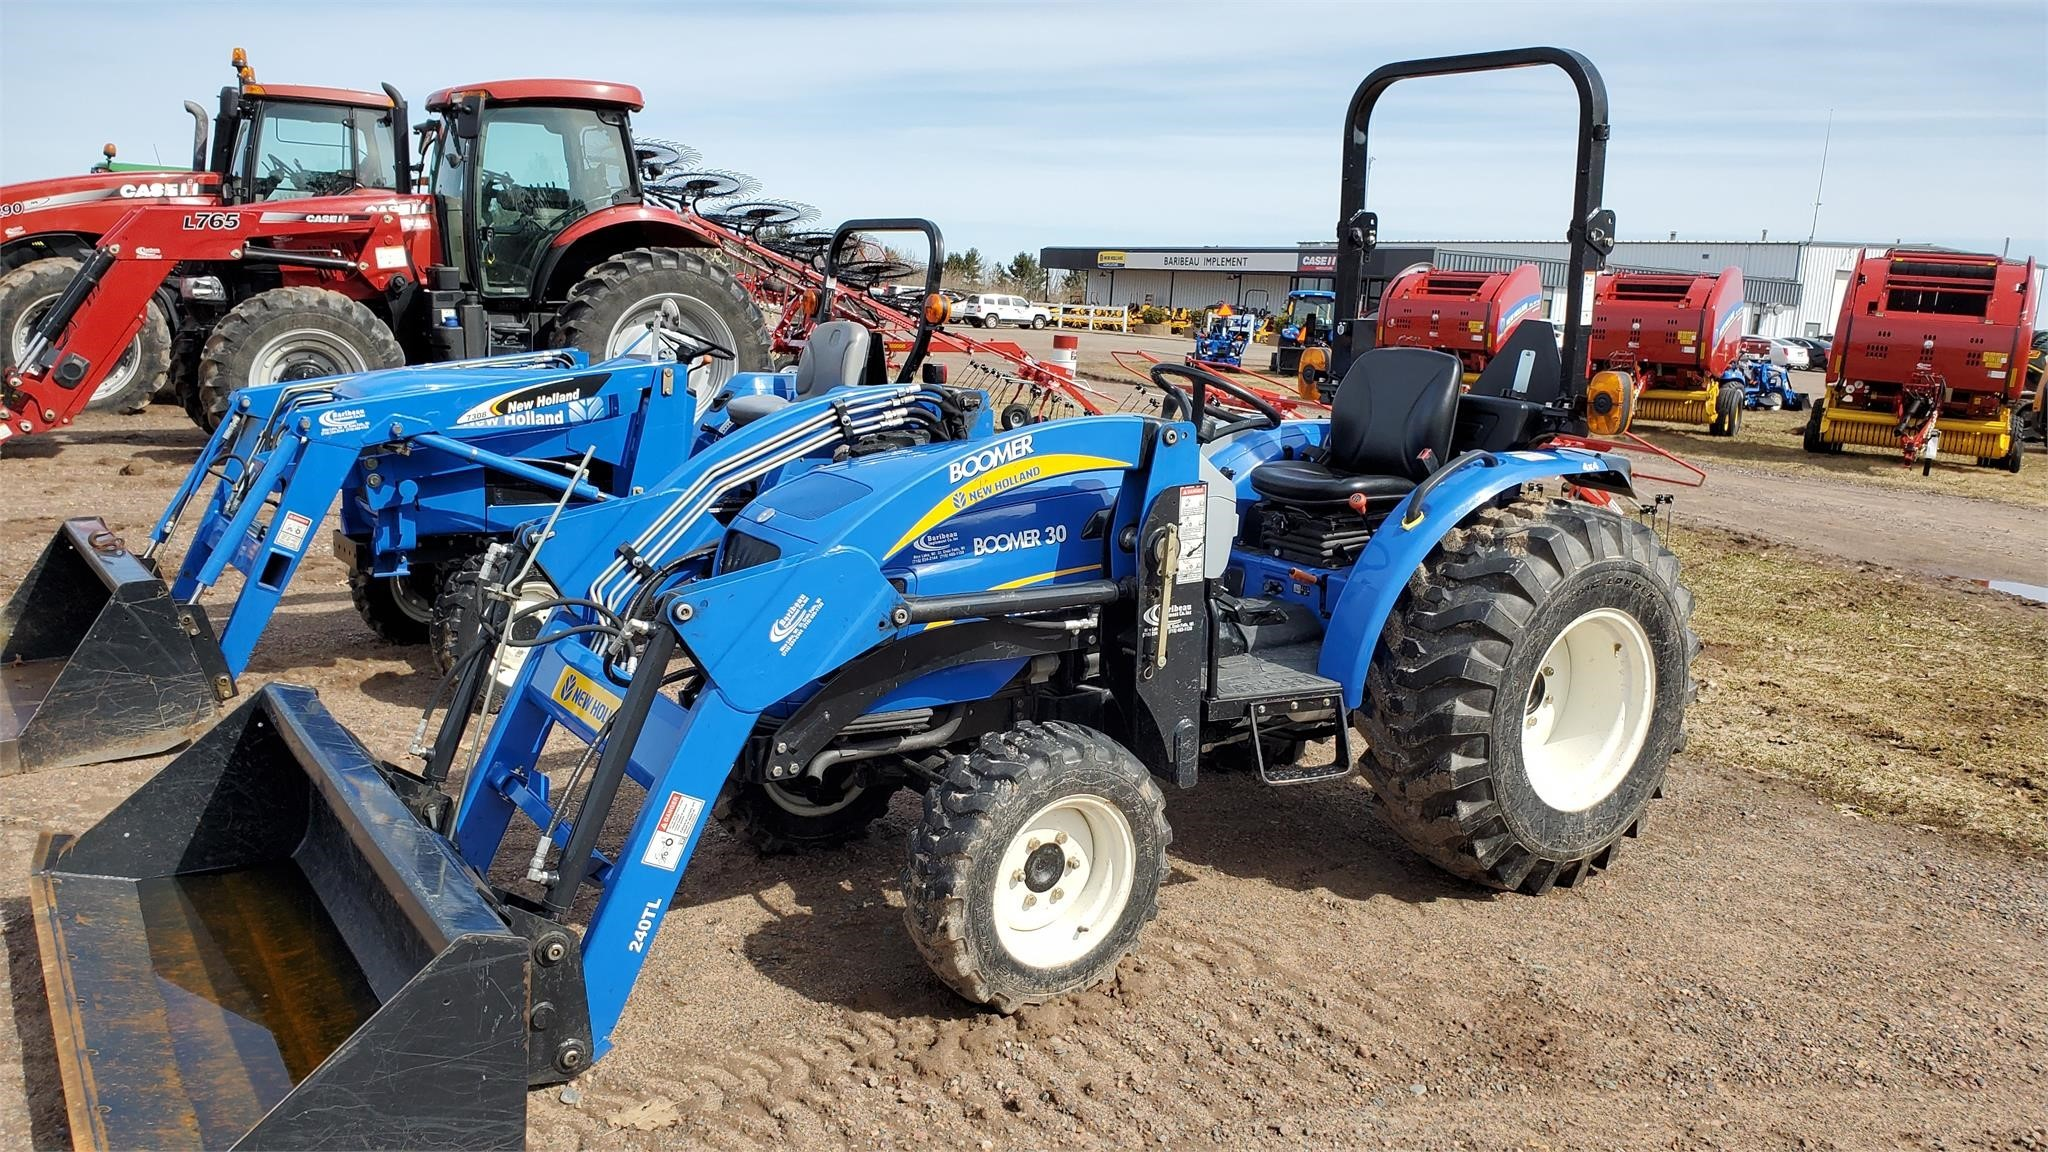 2012 New Holland Boomer 30 Tractor